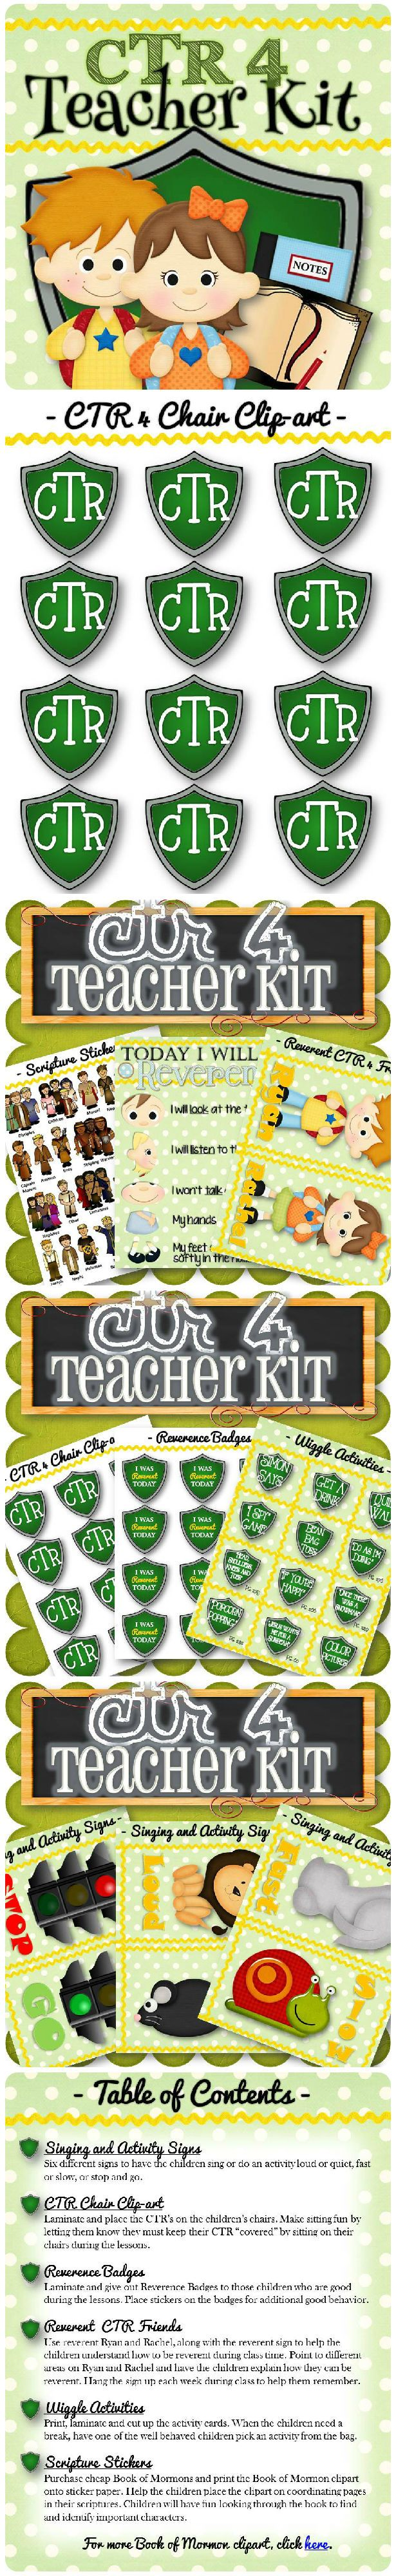 The perfect kit to make teaching CTR 4 and young children simple and more fun! The activities, rewards, teaching ideas, and games will help make LDS primary lessons a little easier and more fun for both the child and the teacher. Free CTR 4 clip-art to help kids stay on their chairs!